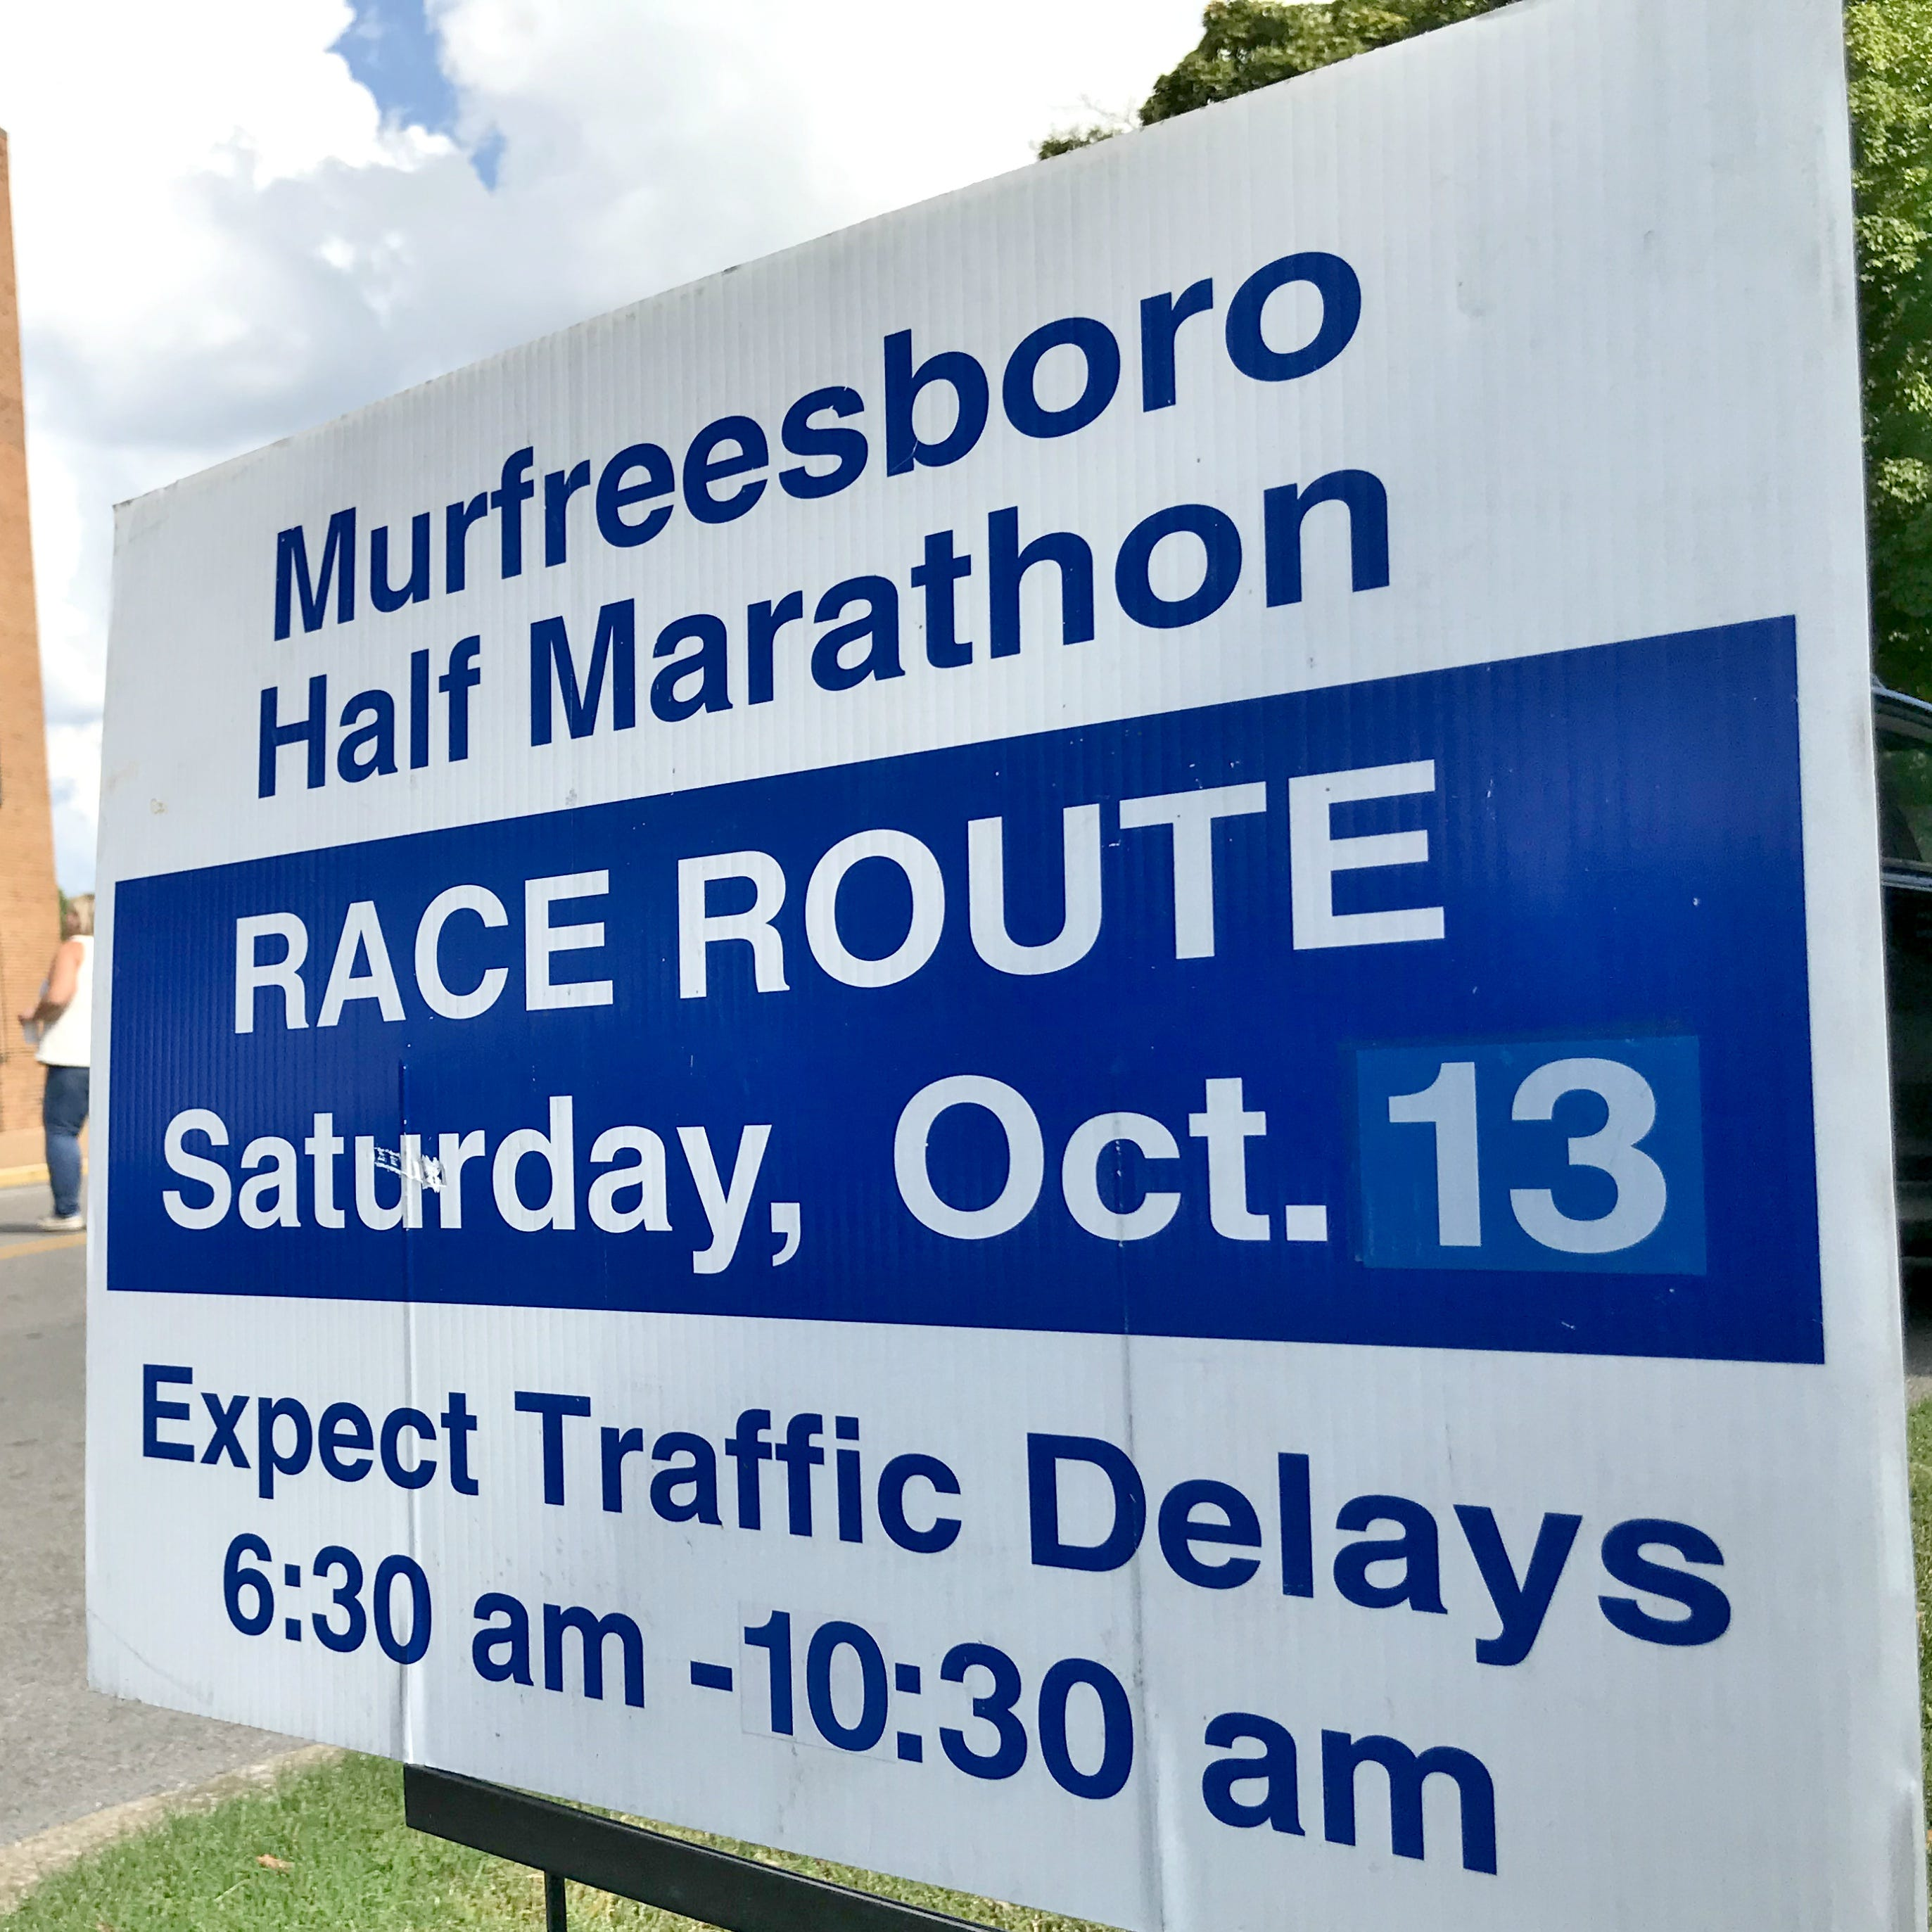 Murfreesboro Half Marathon: What to know about the 2018 Middle Half